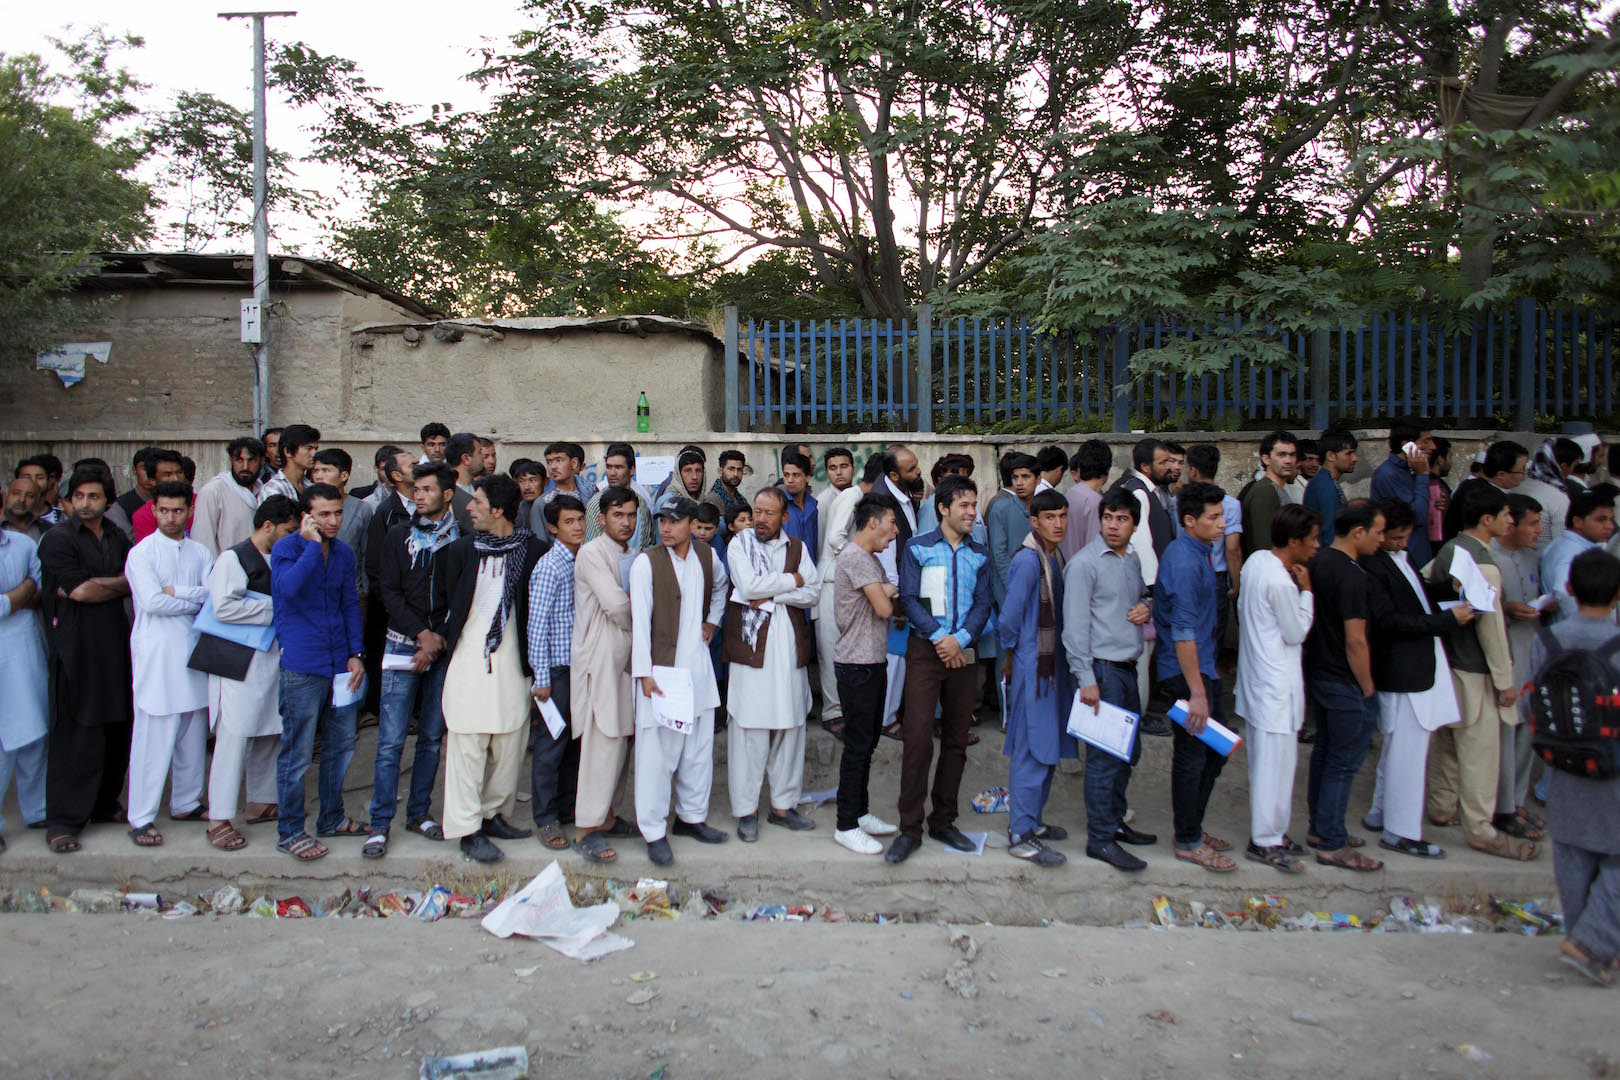 People lined up at the passport office in Kabul